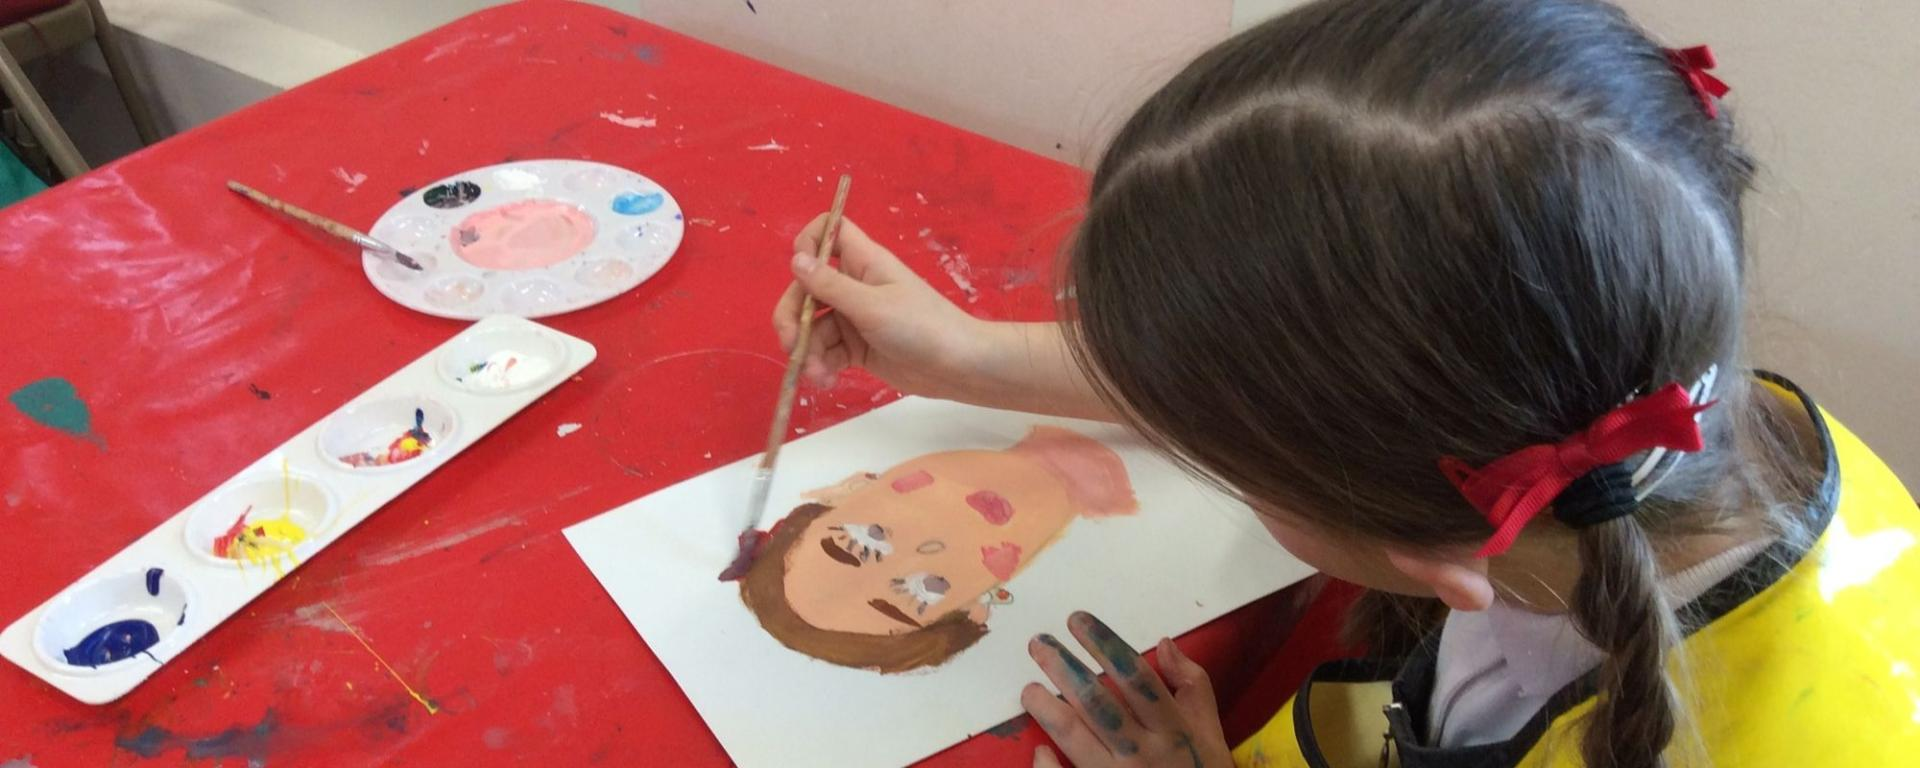 School Child Painting A Self Portrait